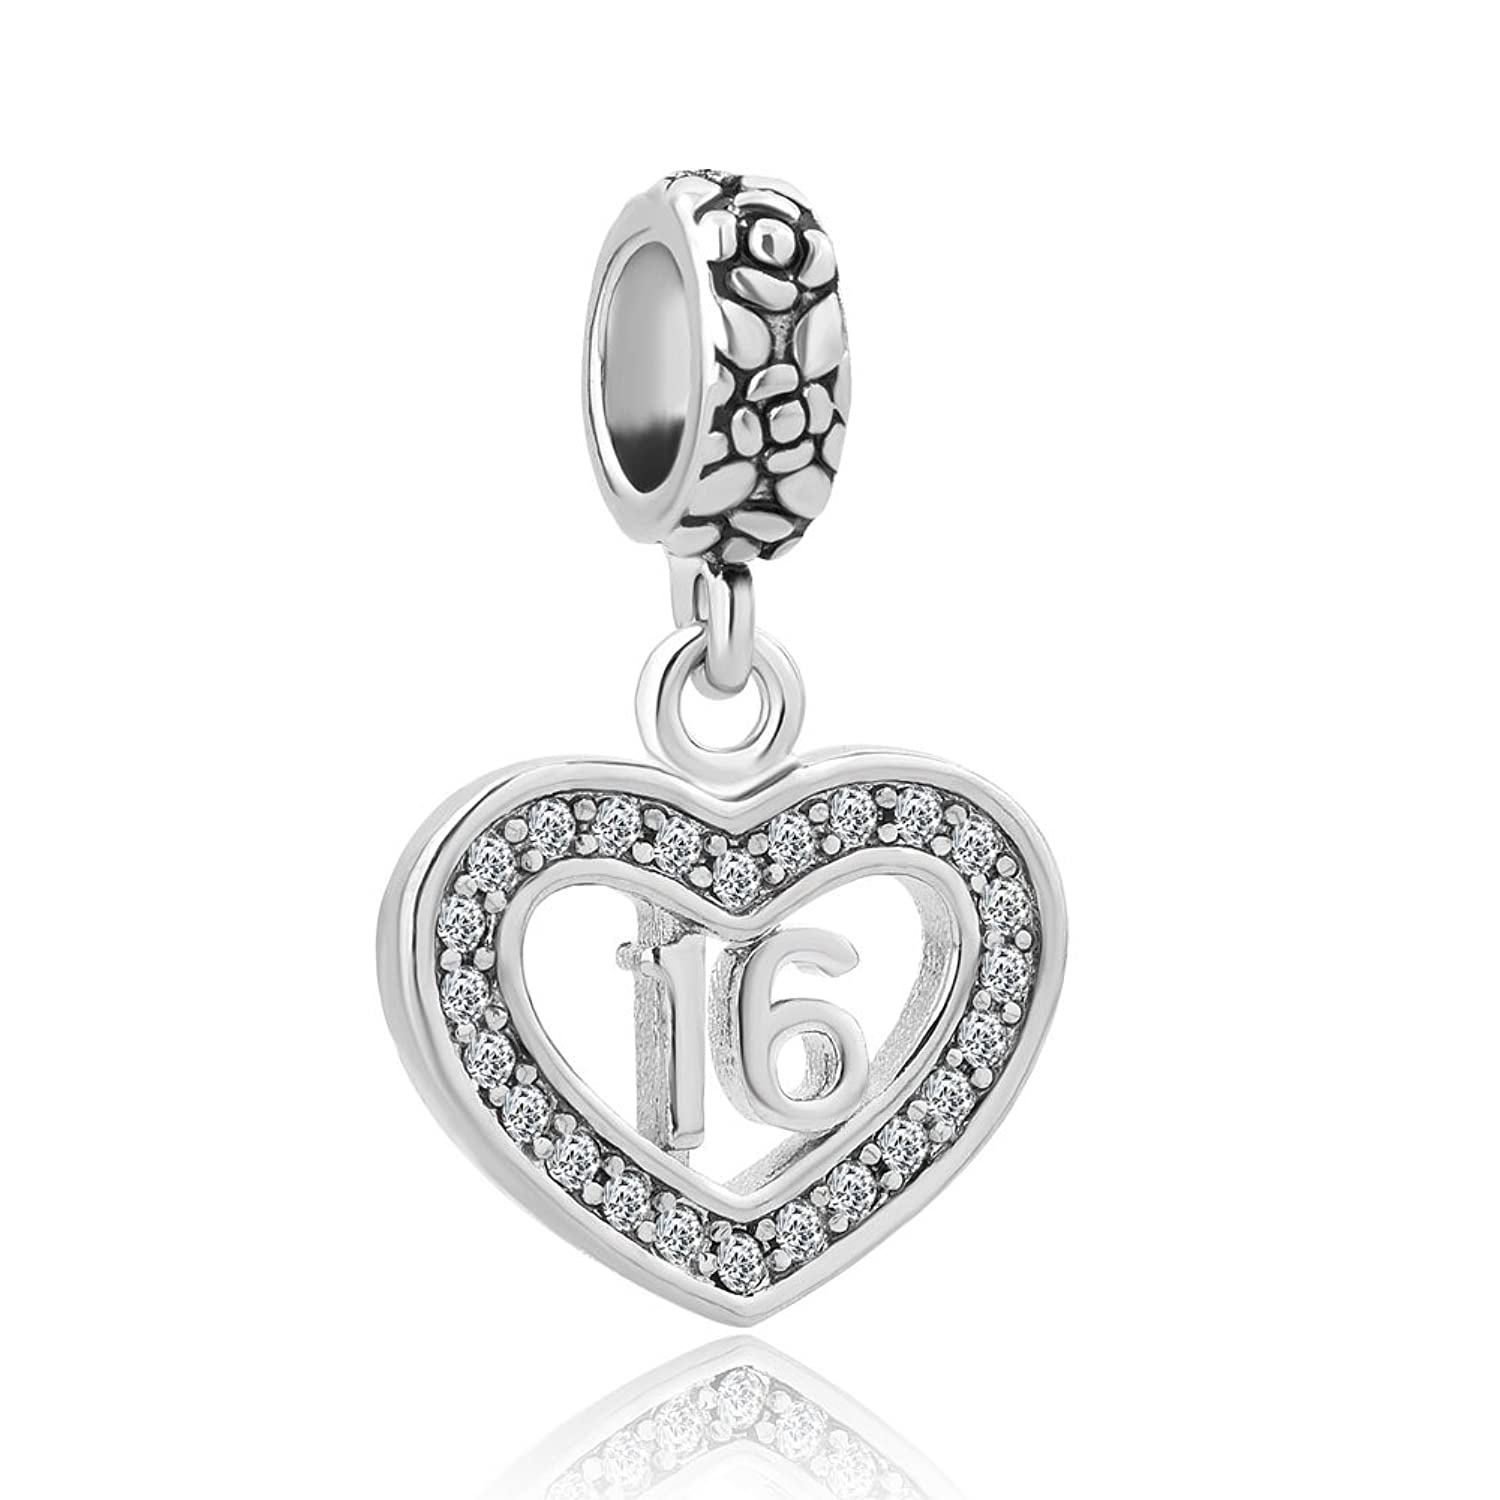 Charmed Craft Heart 18 Coming-of-age Sweet 16 Birthday Gifts Charms Crystal Dangle Beads For Bracelets